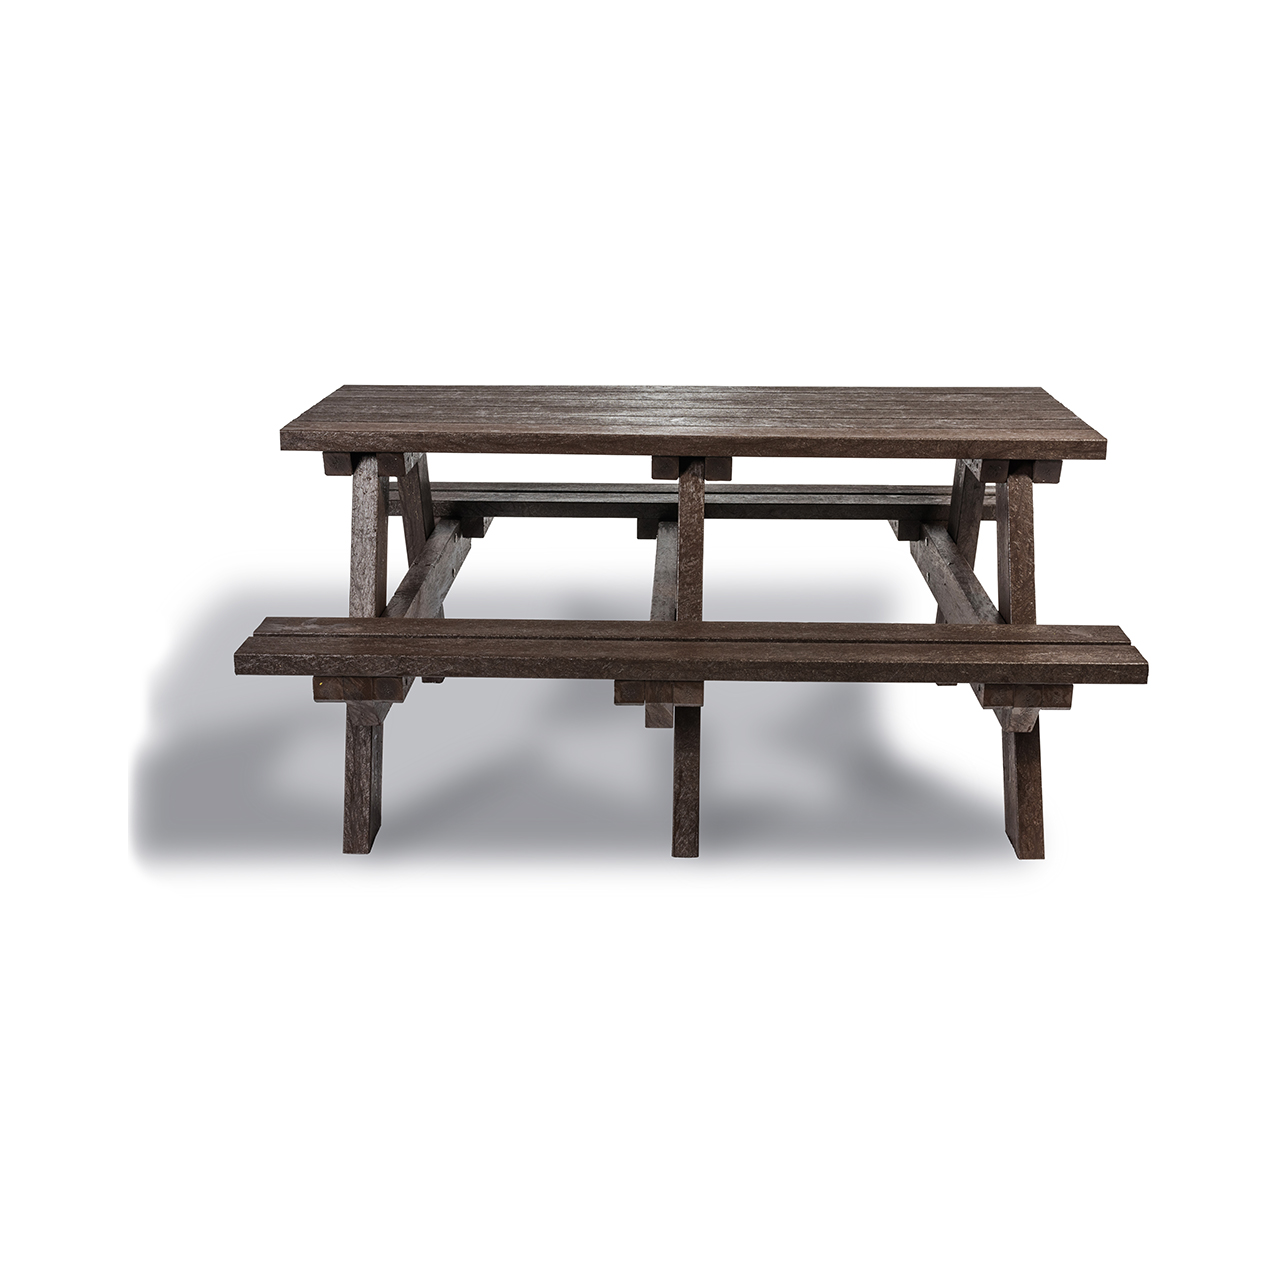 Plaswood Hero A-Frame Table Semi-Assembled - Brown image 0